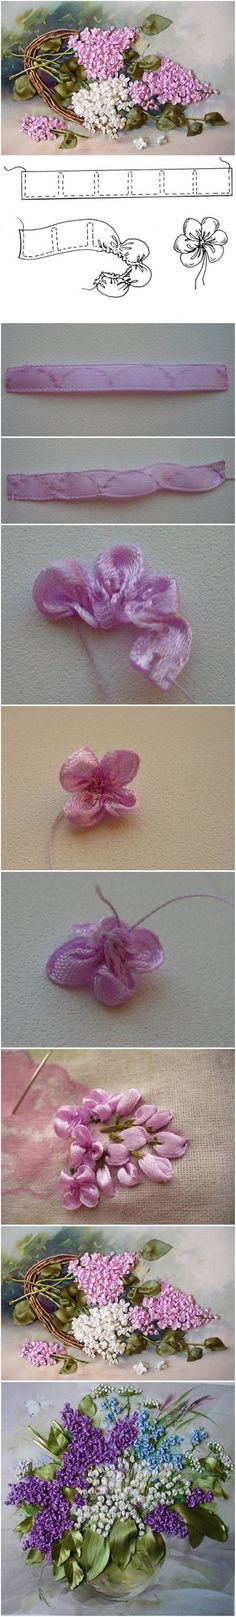 How to Make Embroidery Ribbon Lilac Flowers #craft #ribbon #flower #embroidery